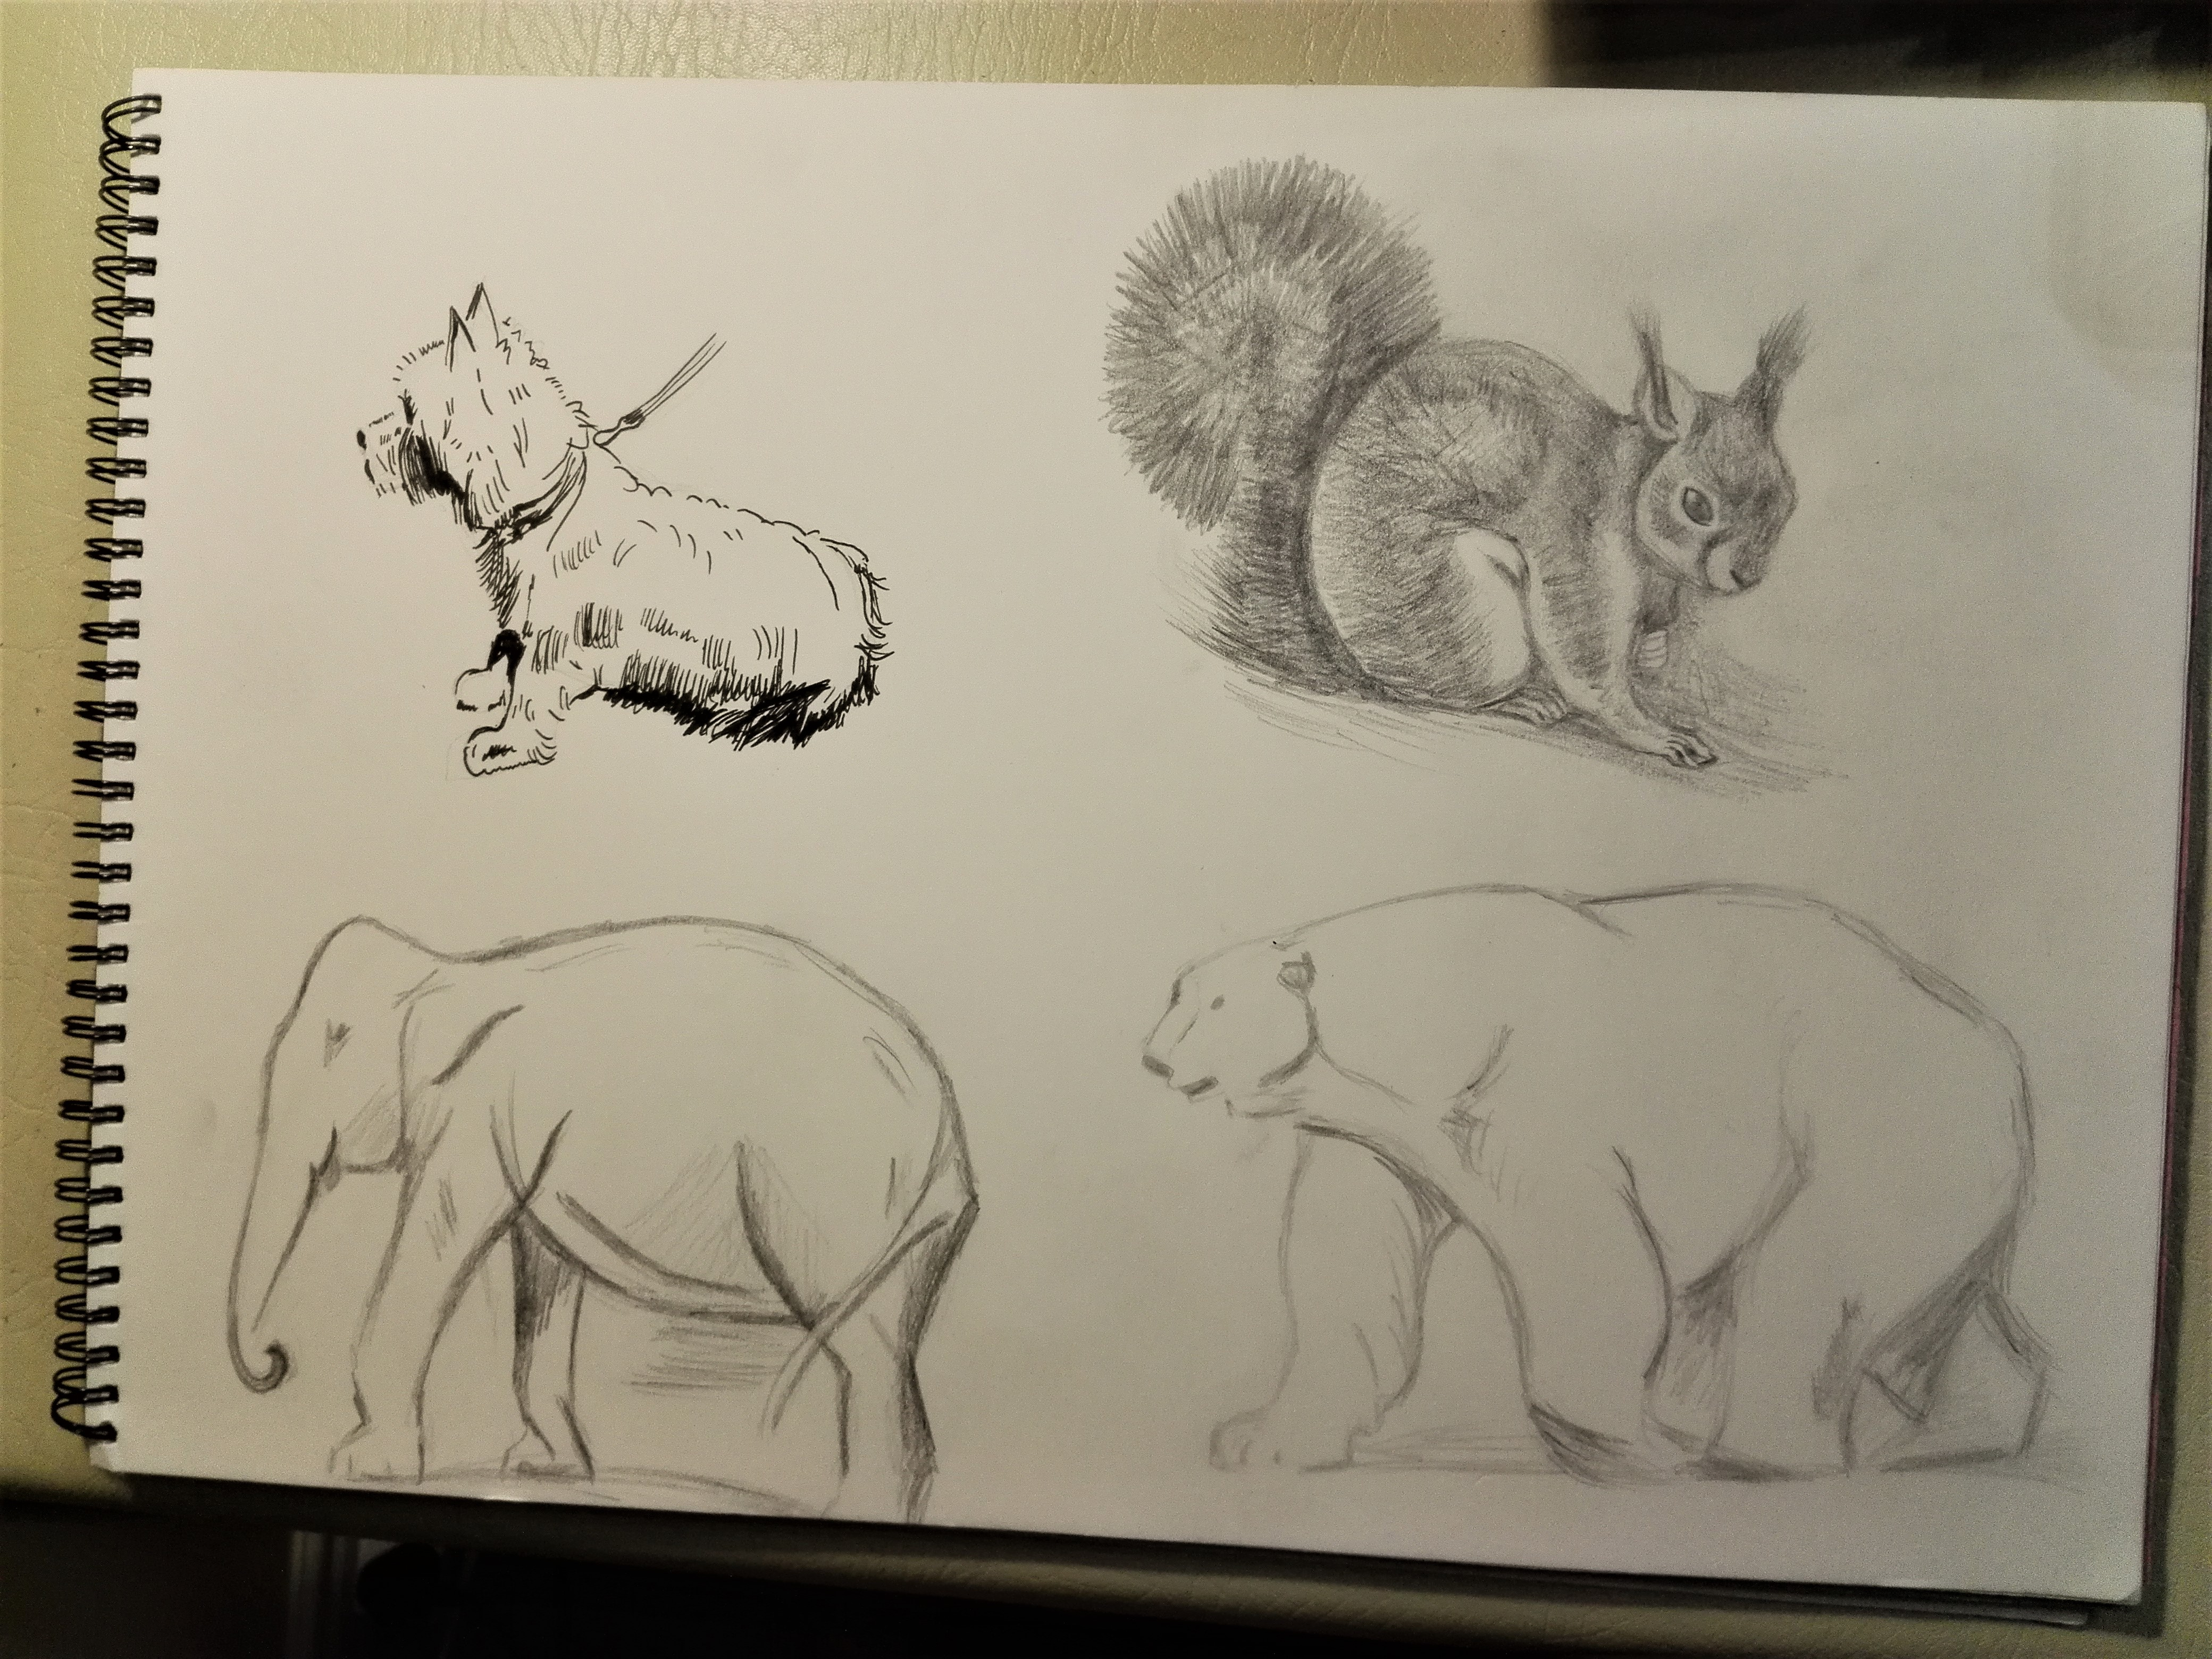 Animal drawings using charcoal, graphite and fine liner created by a student at Fundamental Art Skills course in West Midlands